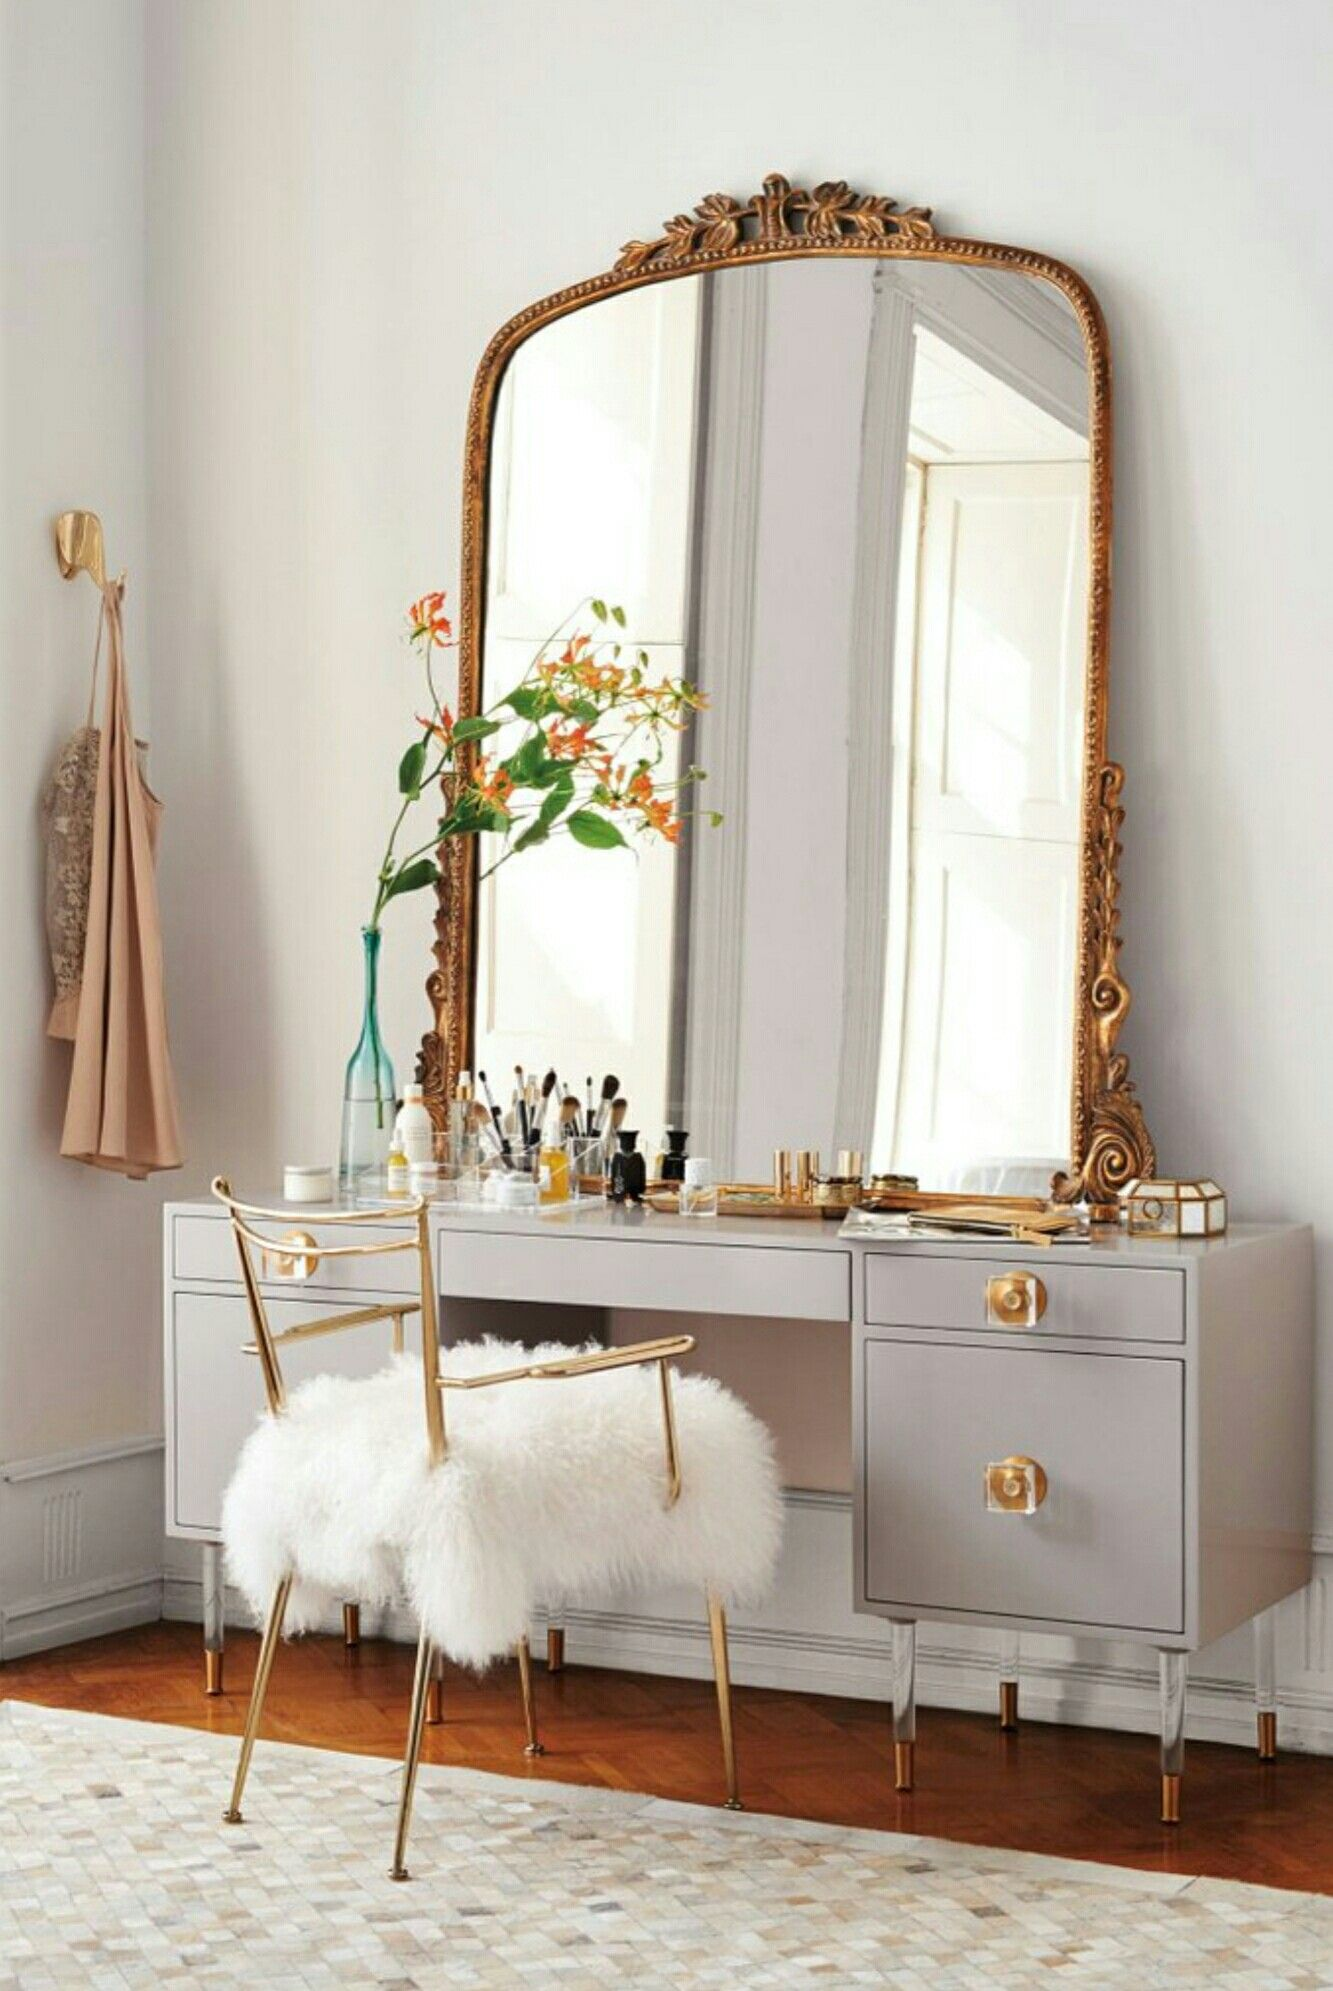 Vanity, French, Large Mirror, Furry Chair Bedroom Mirrors, Antique Bedroom  Decor,